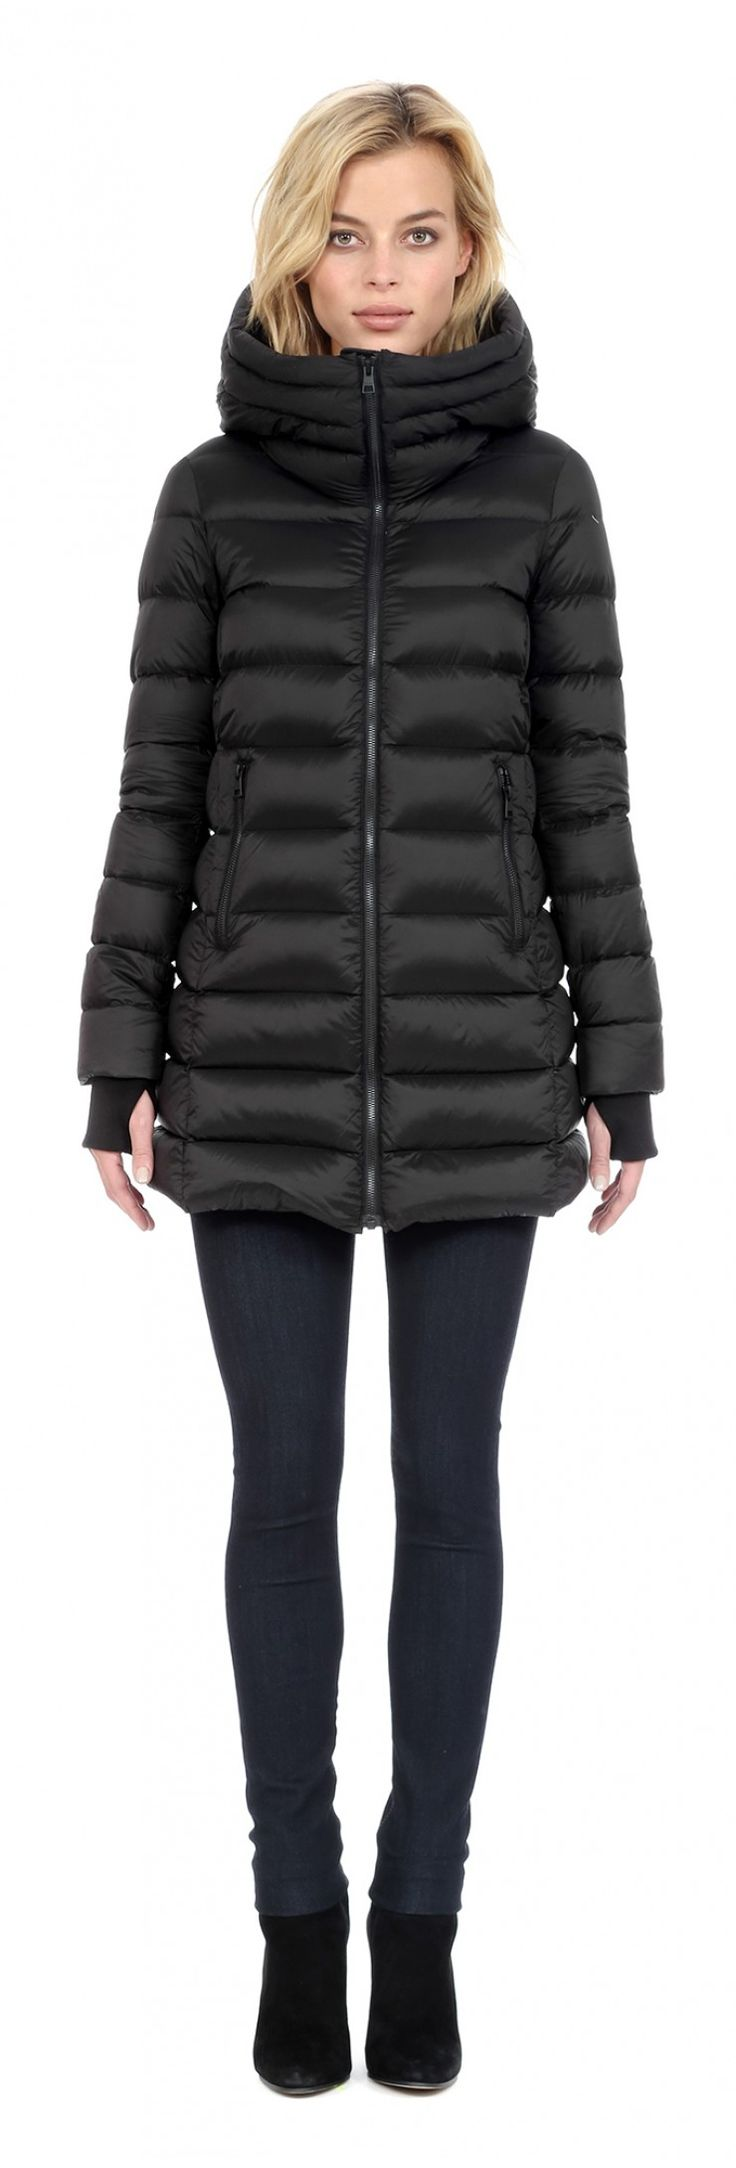 ELYNA A-line, hooded light weight down jacket in Black